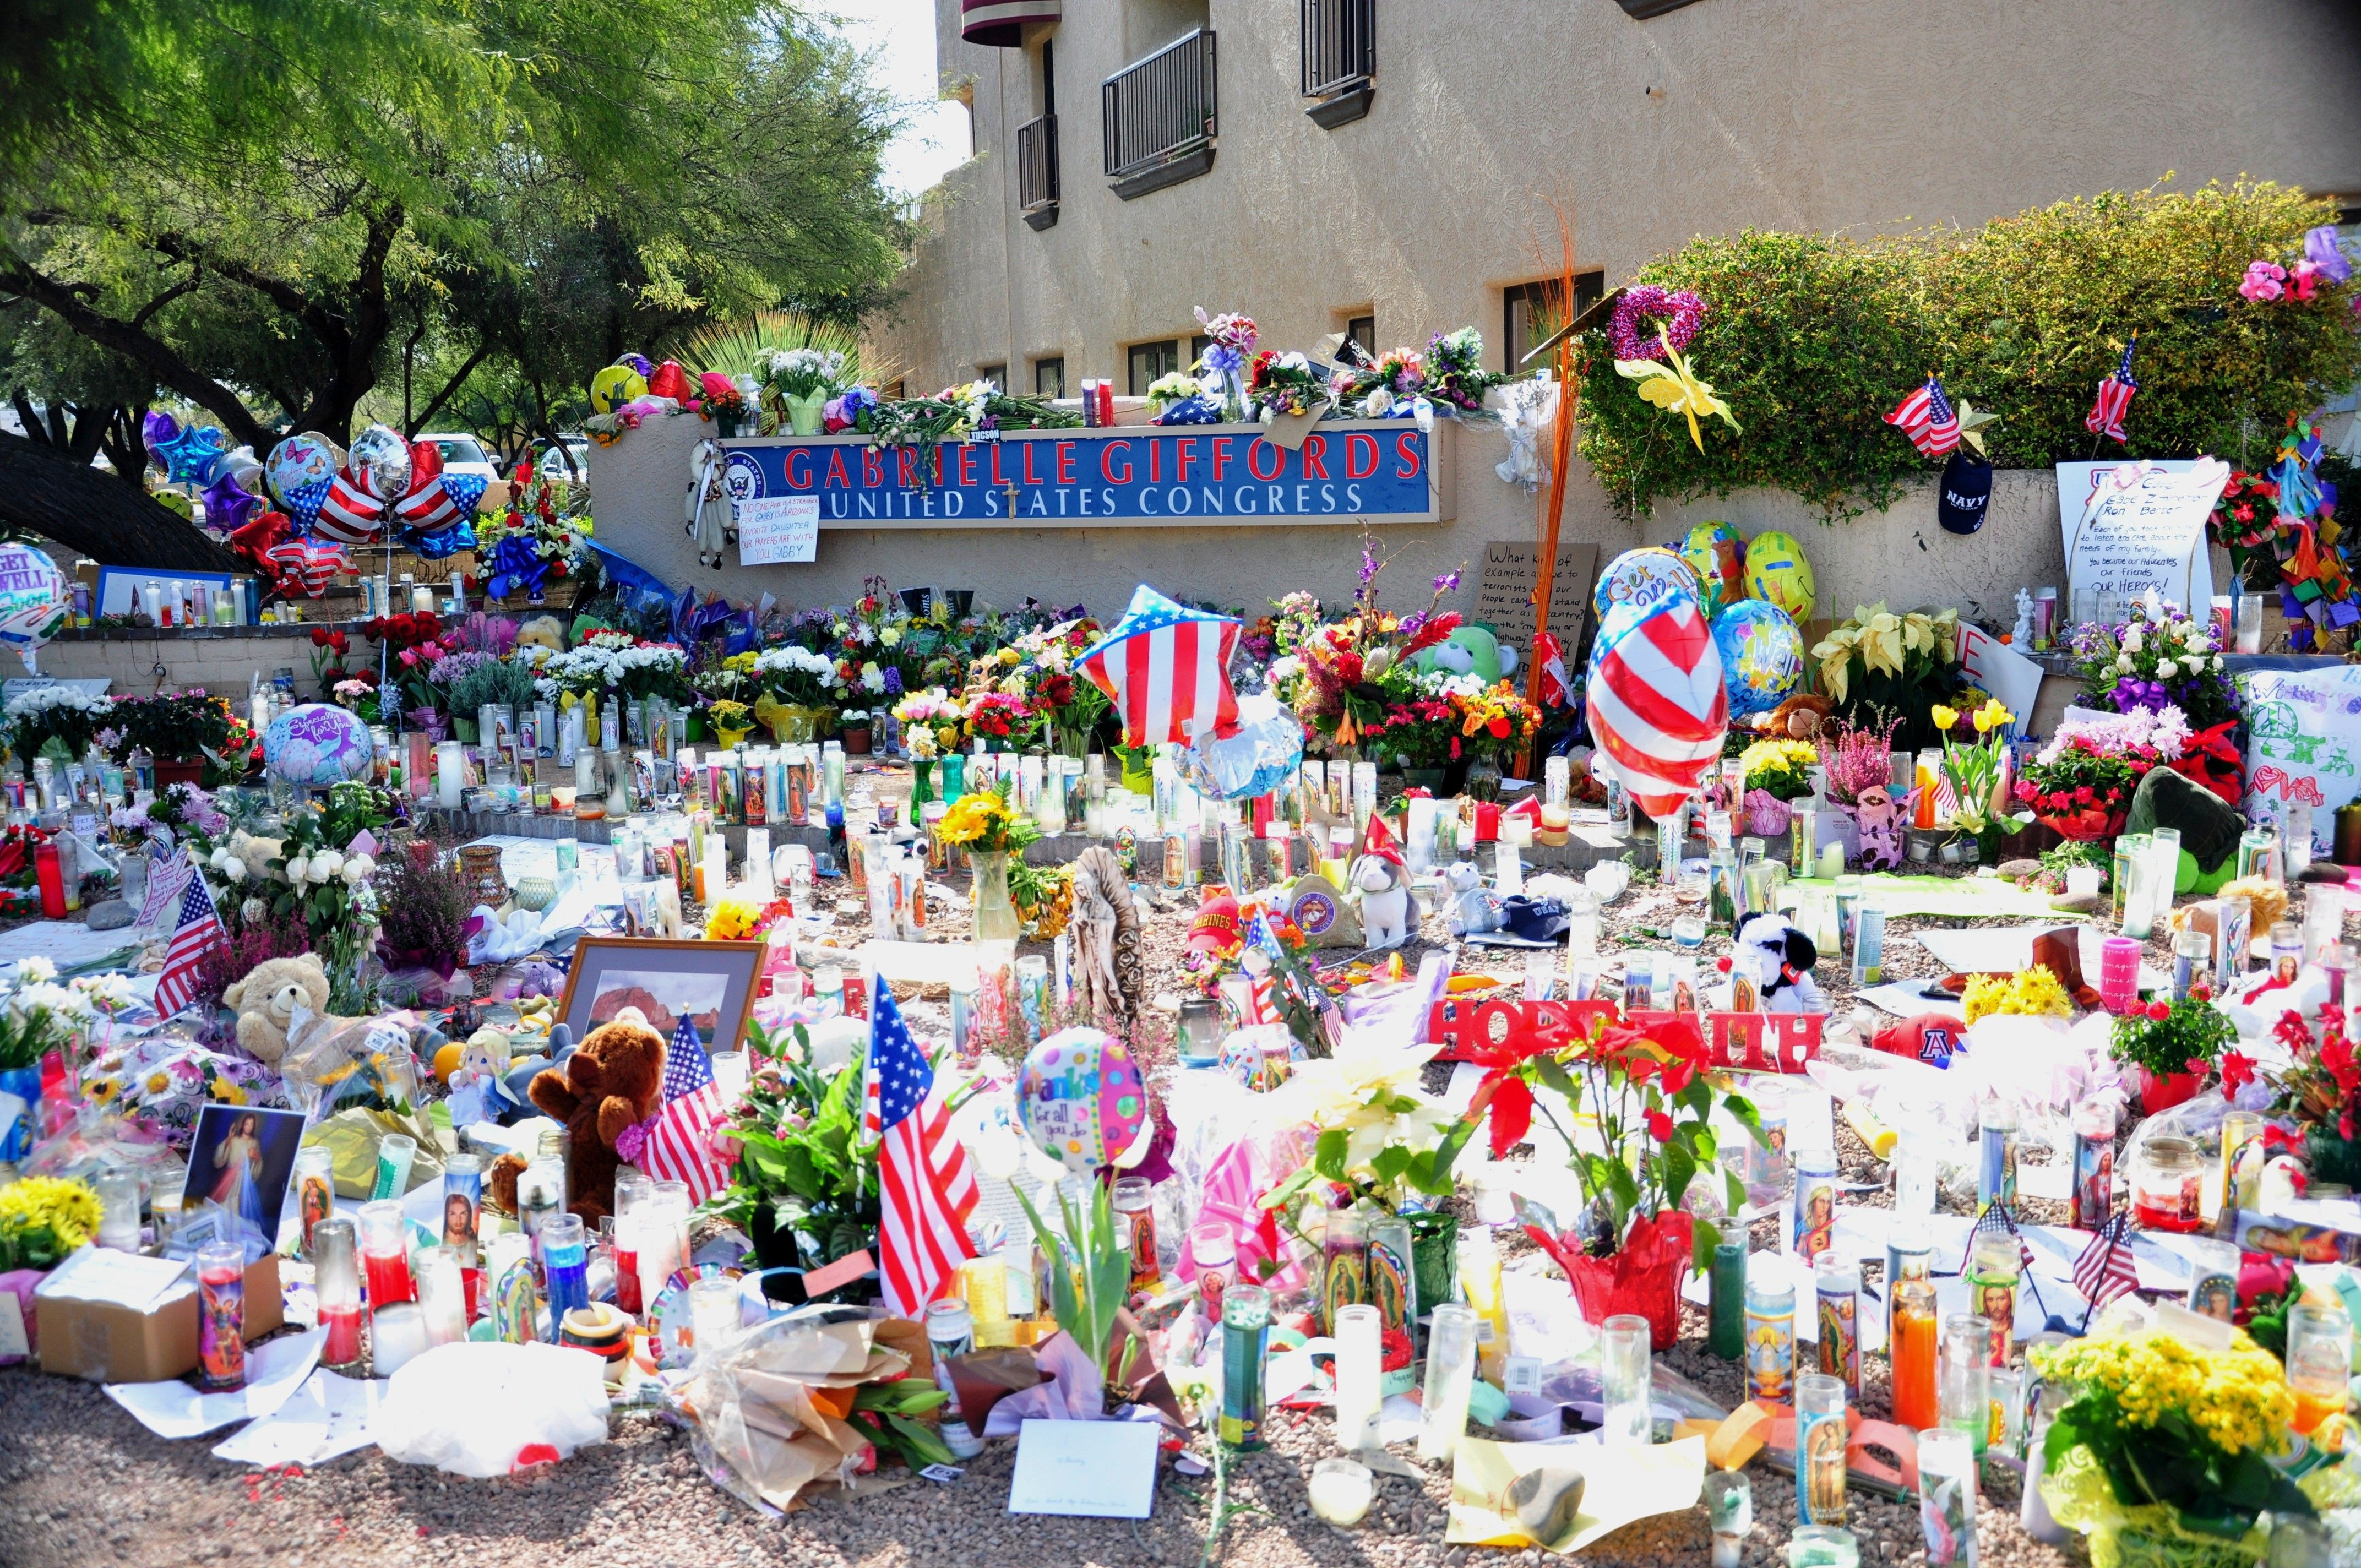 """A view of the large grassroots tribute memorial which grew up at Congresswoman Gabrielle Giffords' office after she and 18 other people were shot at her """"Congress on Your Corner"""" event on January 8, 2011 in Tucson, Arizona. Six people lost their lives in the shooting that day. Photo by Barbara Loving."""